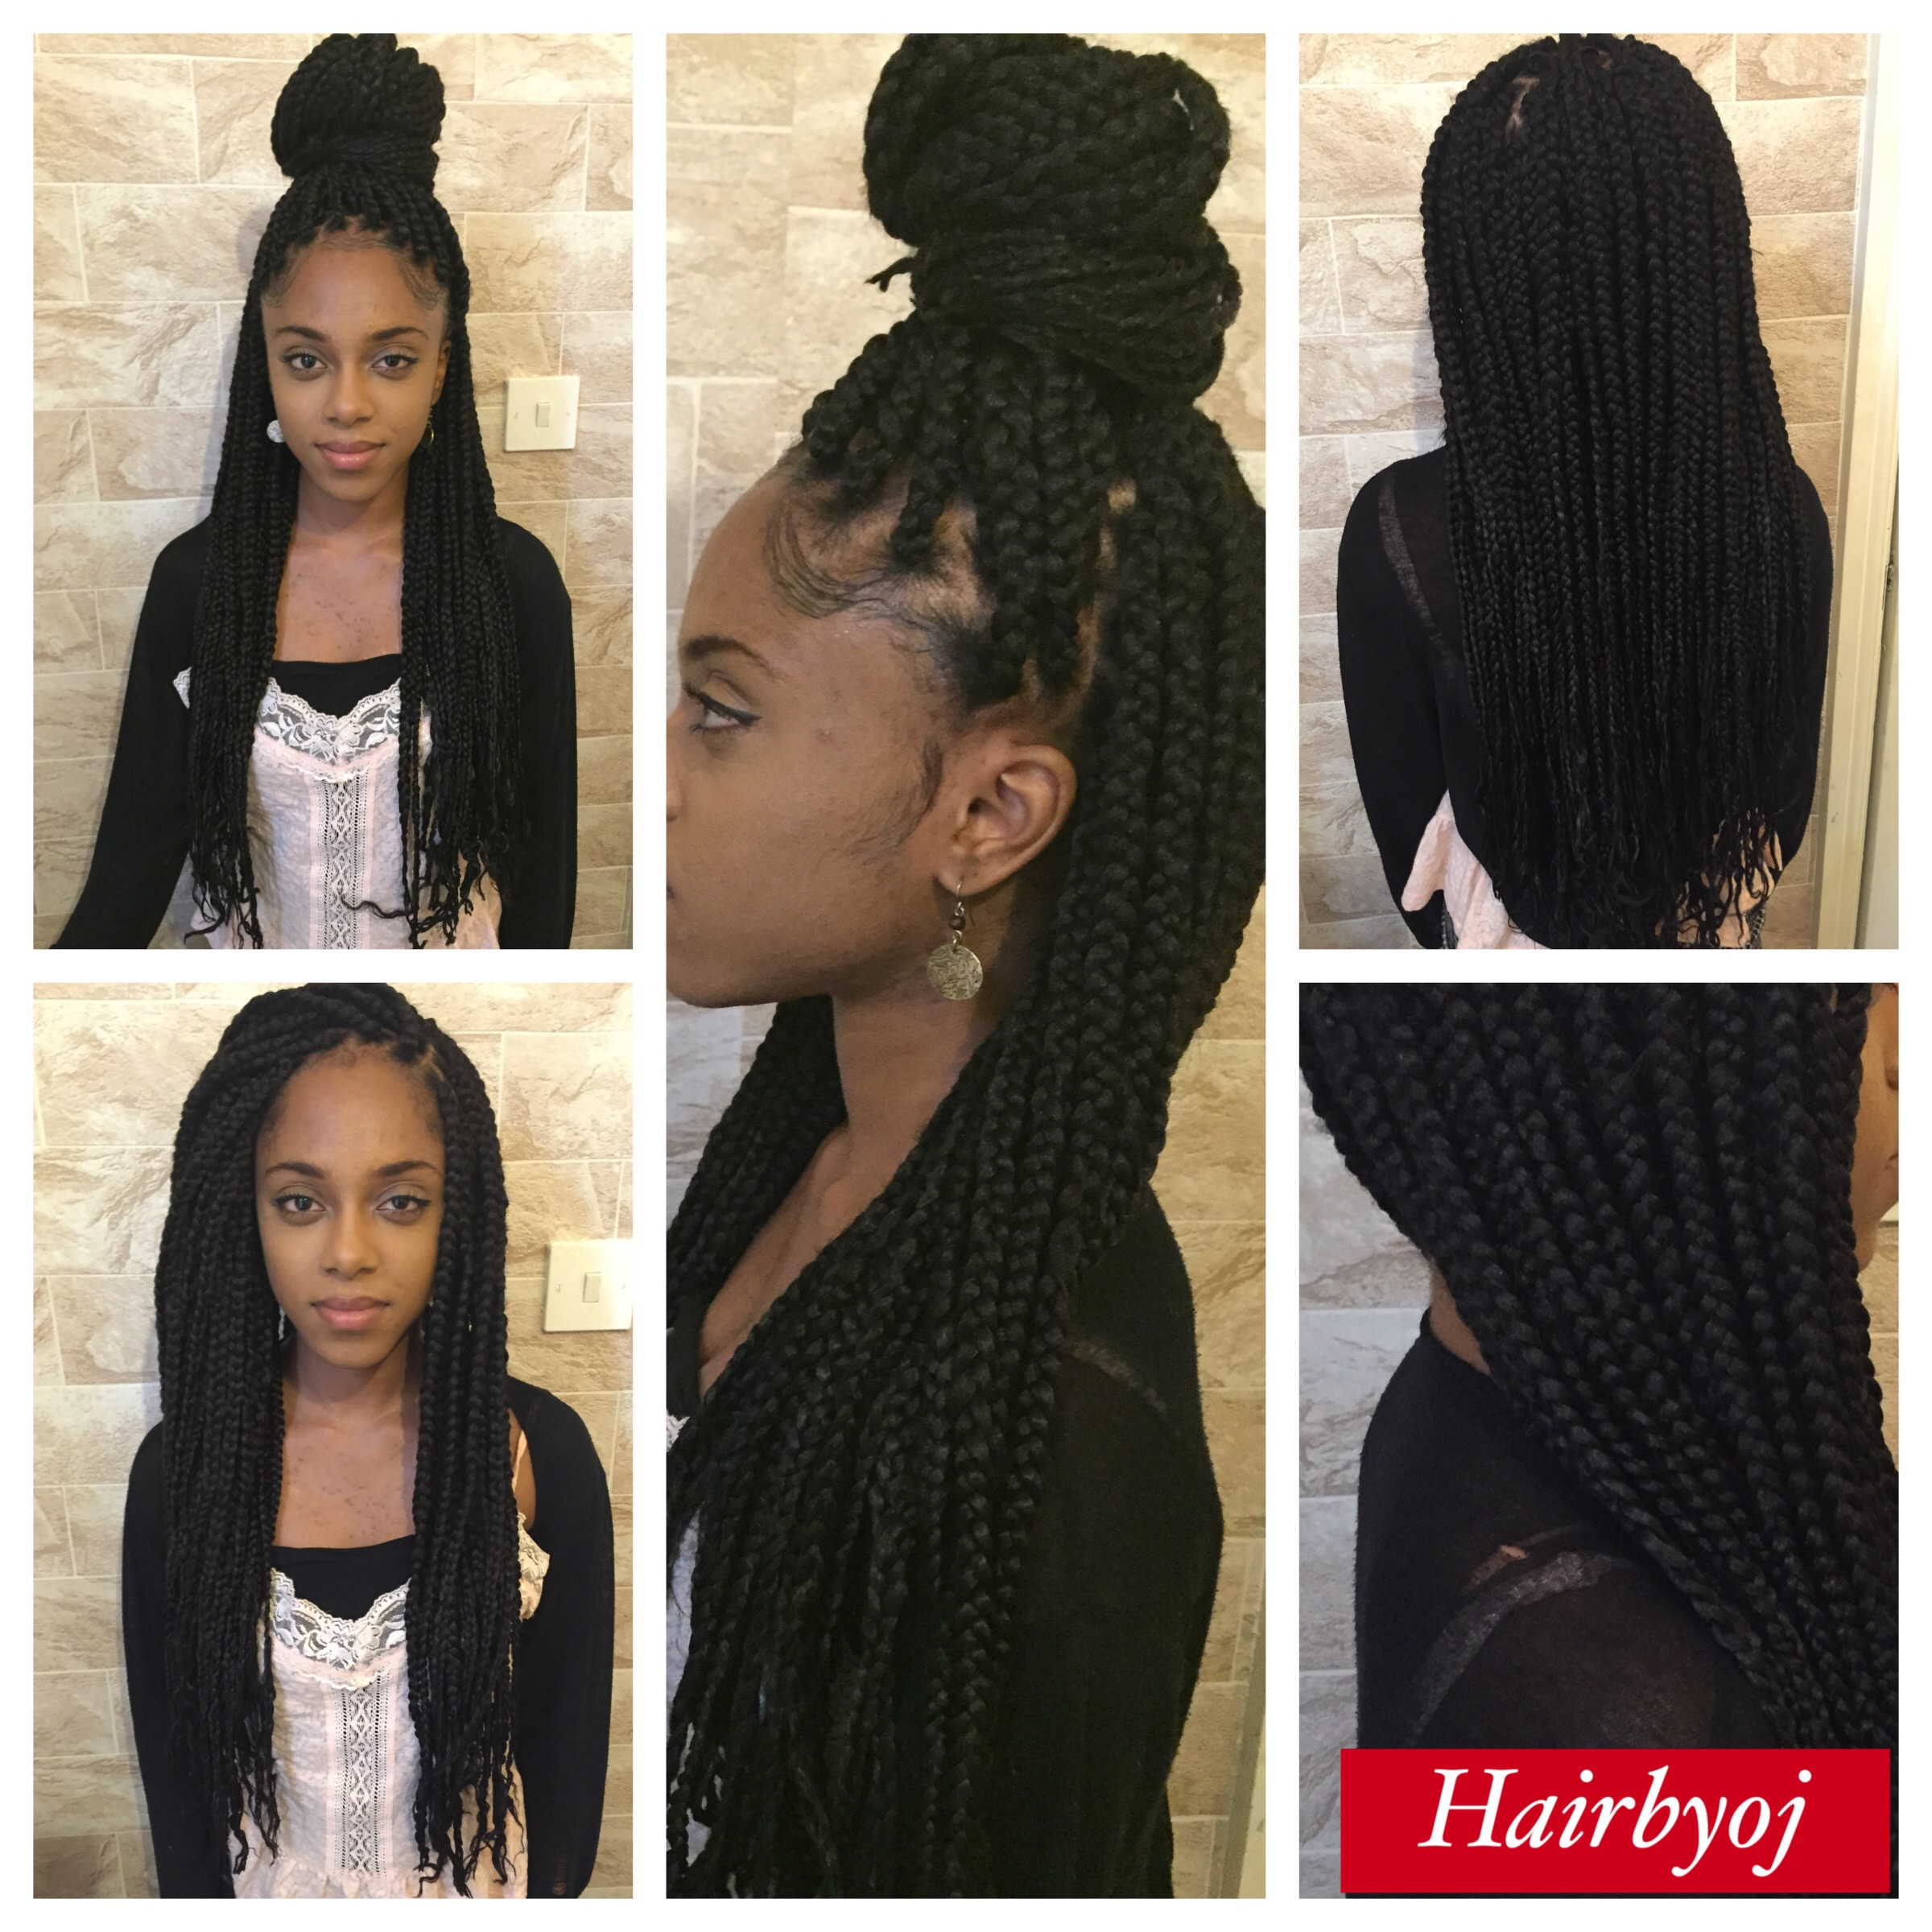 Waist Length Medium Big Sized Box Braids 171 Hairbyoj